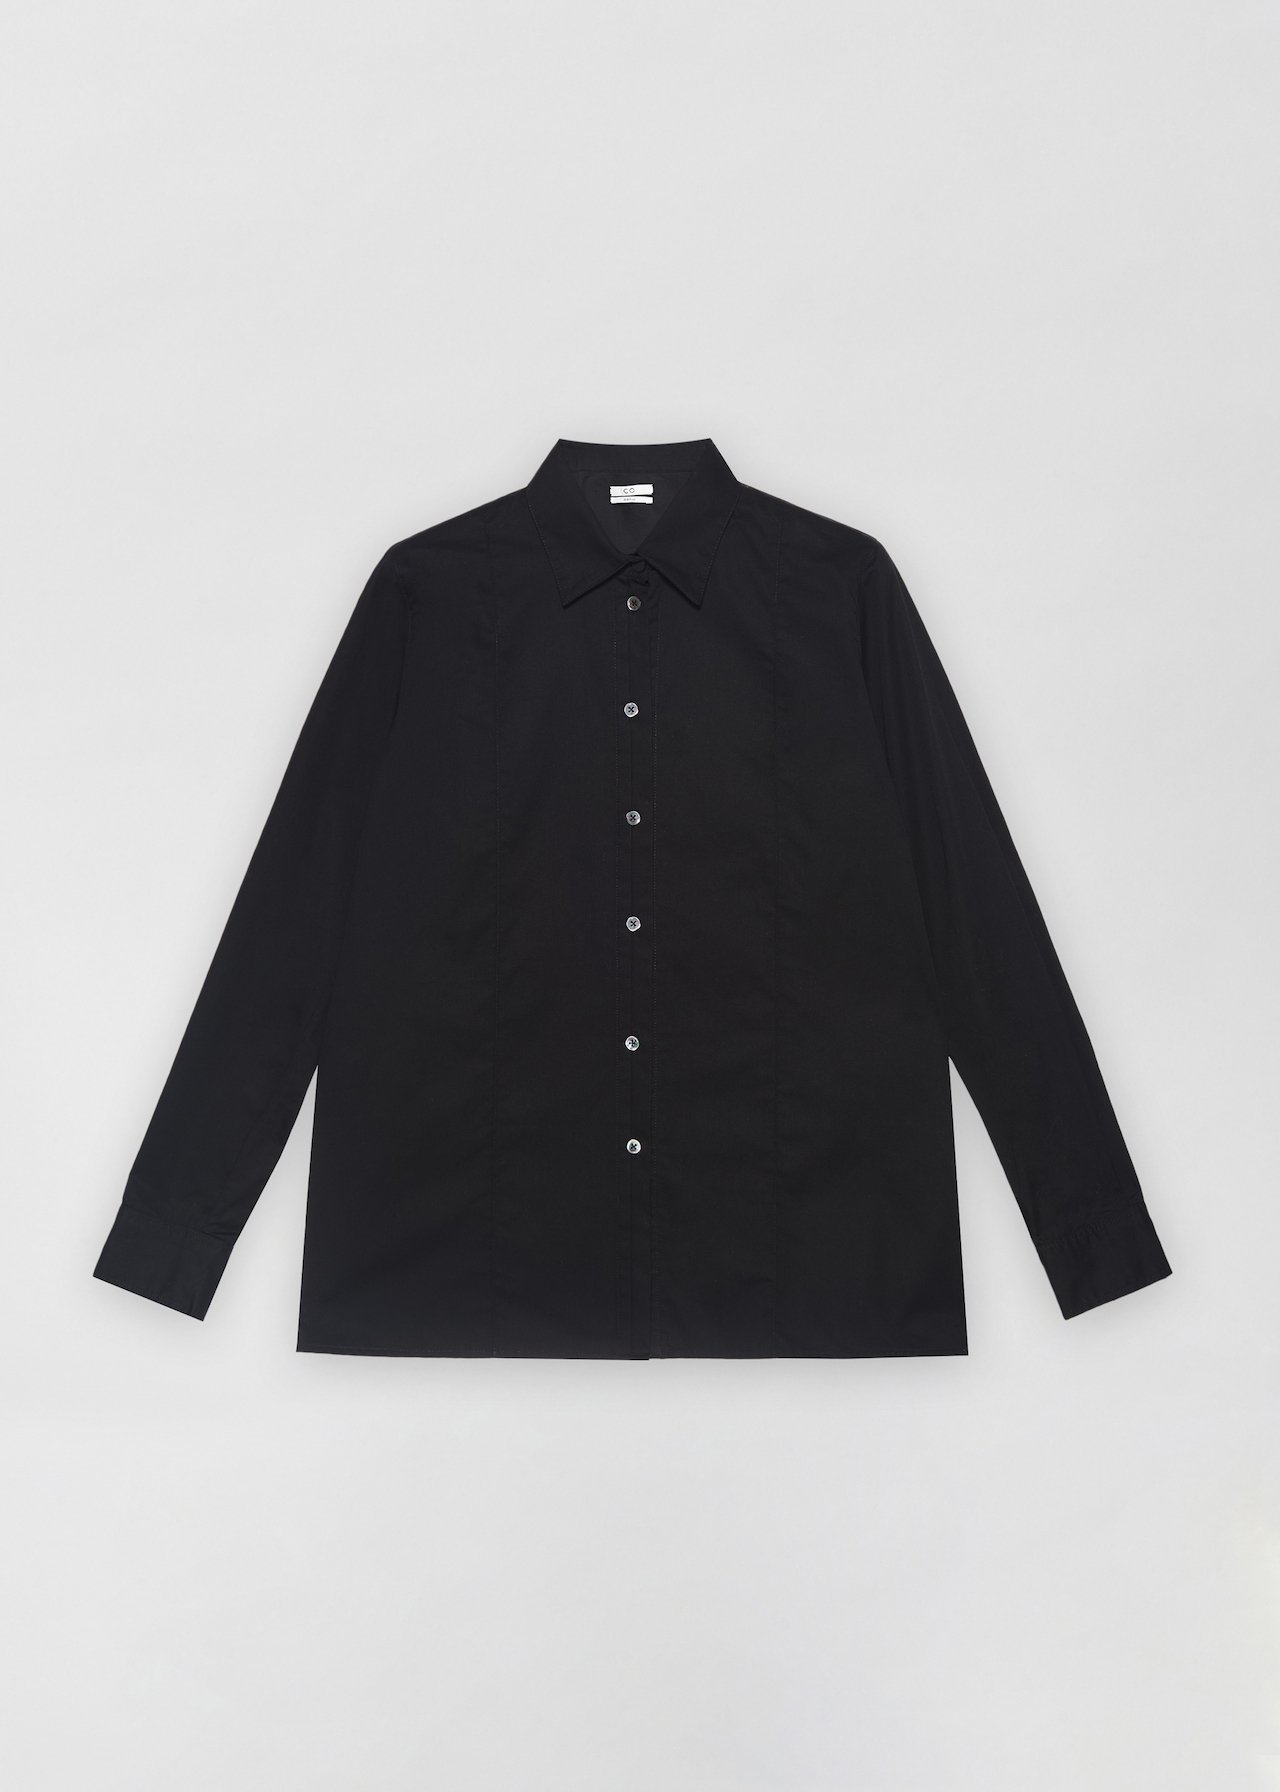 Tucked Placket Button Down Shirt - White in Black by Co Collections